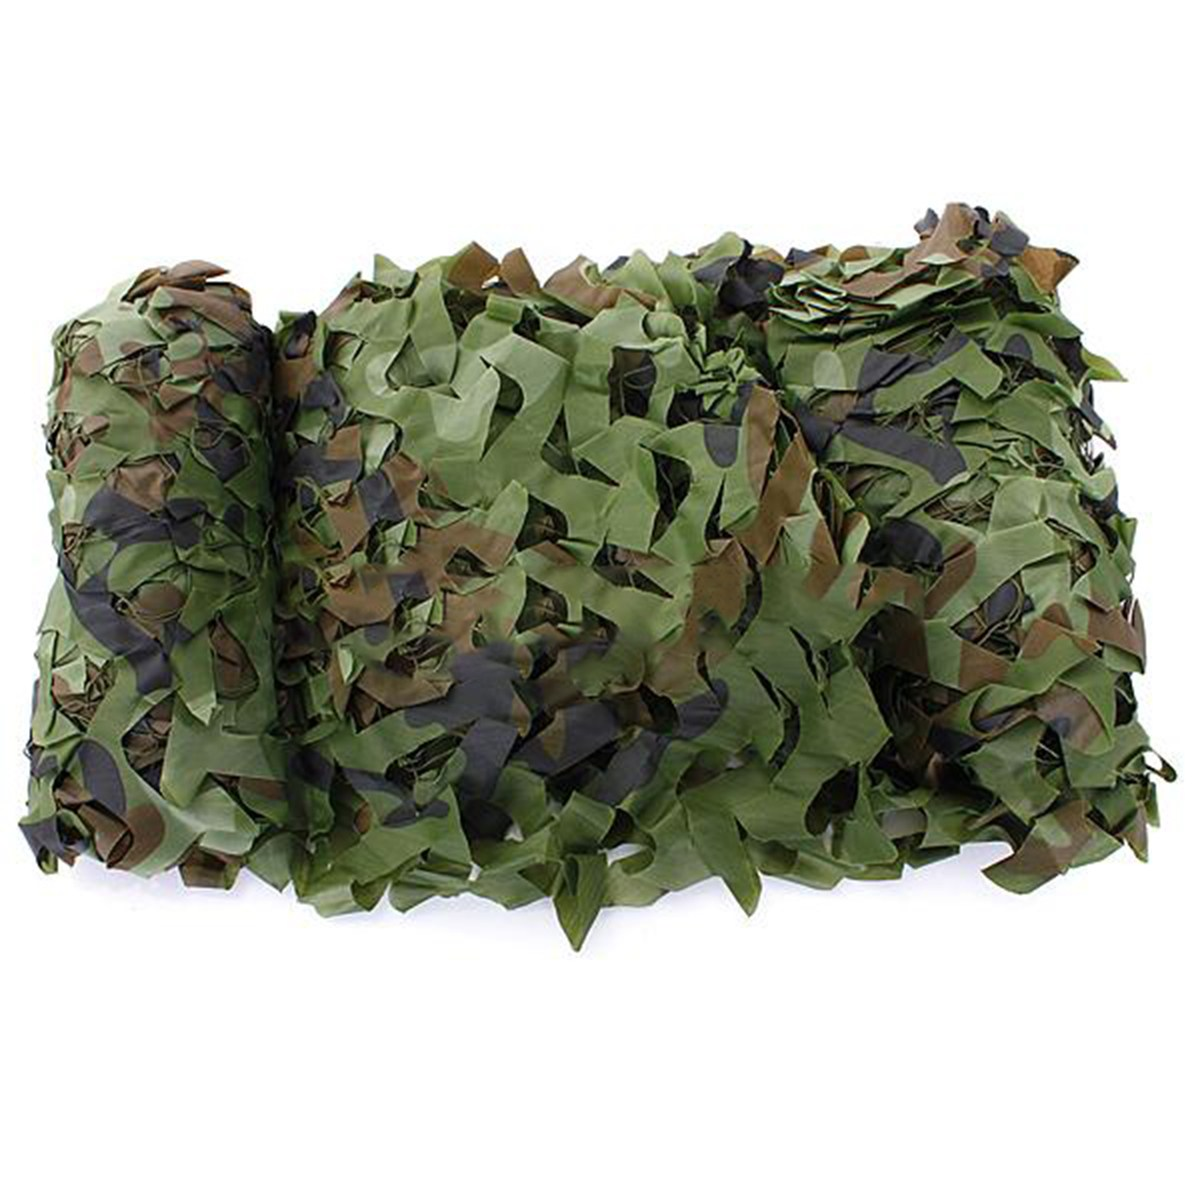 5M x 1.5M <font><b>Outdoor</b></font> Sun Shelter Net CAMOUFLAGE Netting Hunting Woodland Jungle Tarp <font><b>Car</b></font>-covers <font><b>Tent</b></font> Jungle Shelter image